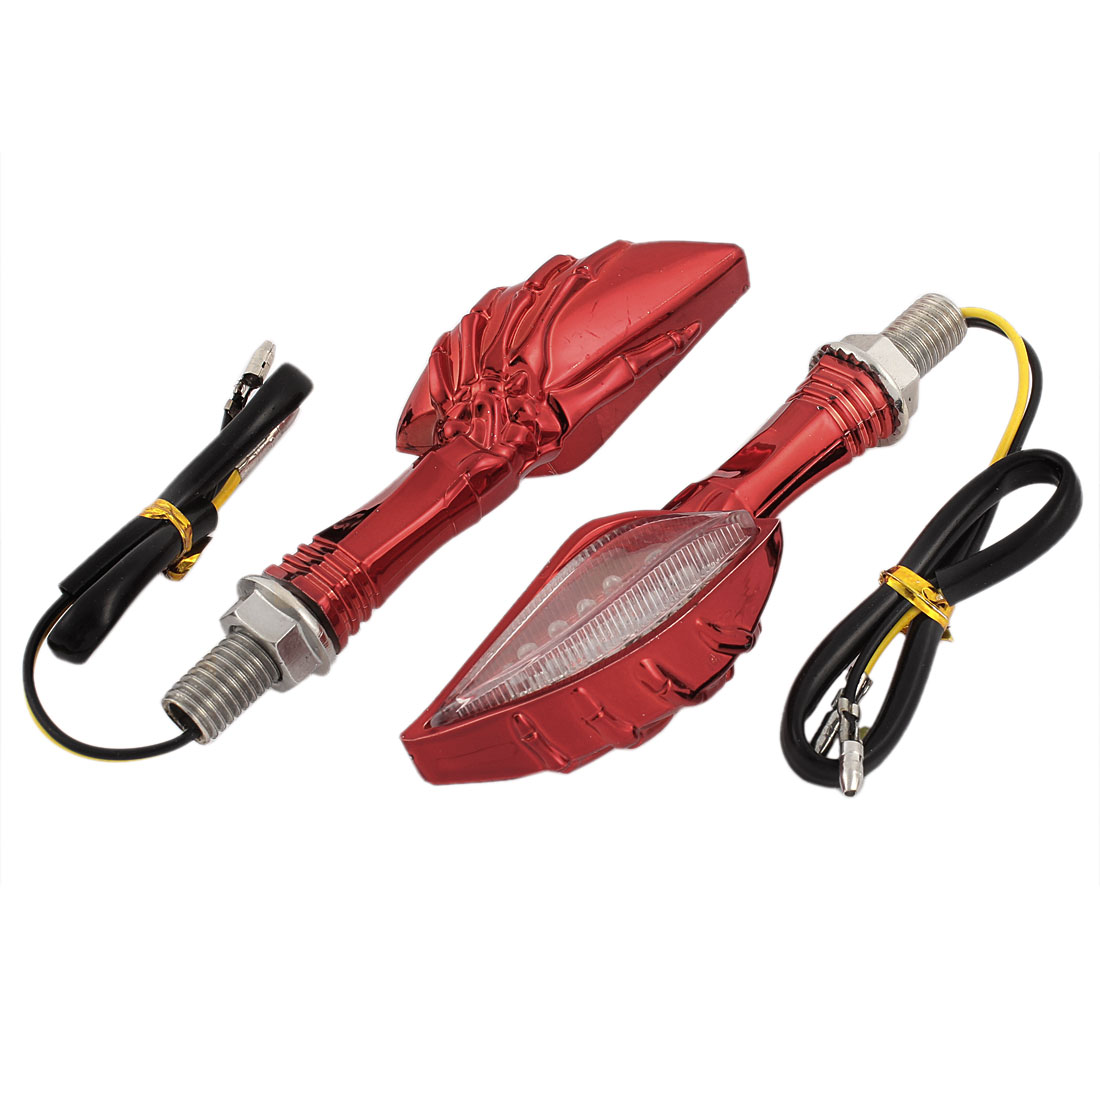 2 Pcs Motorcycle Red Hook Shaped Yellow LED Turn Signal Lights Indicator Front Rear